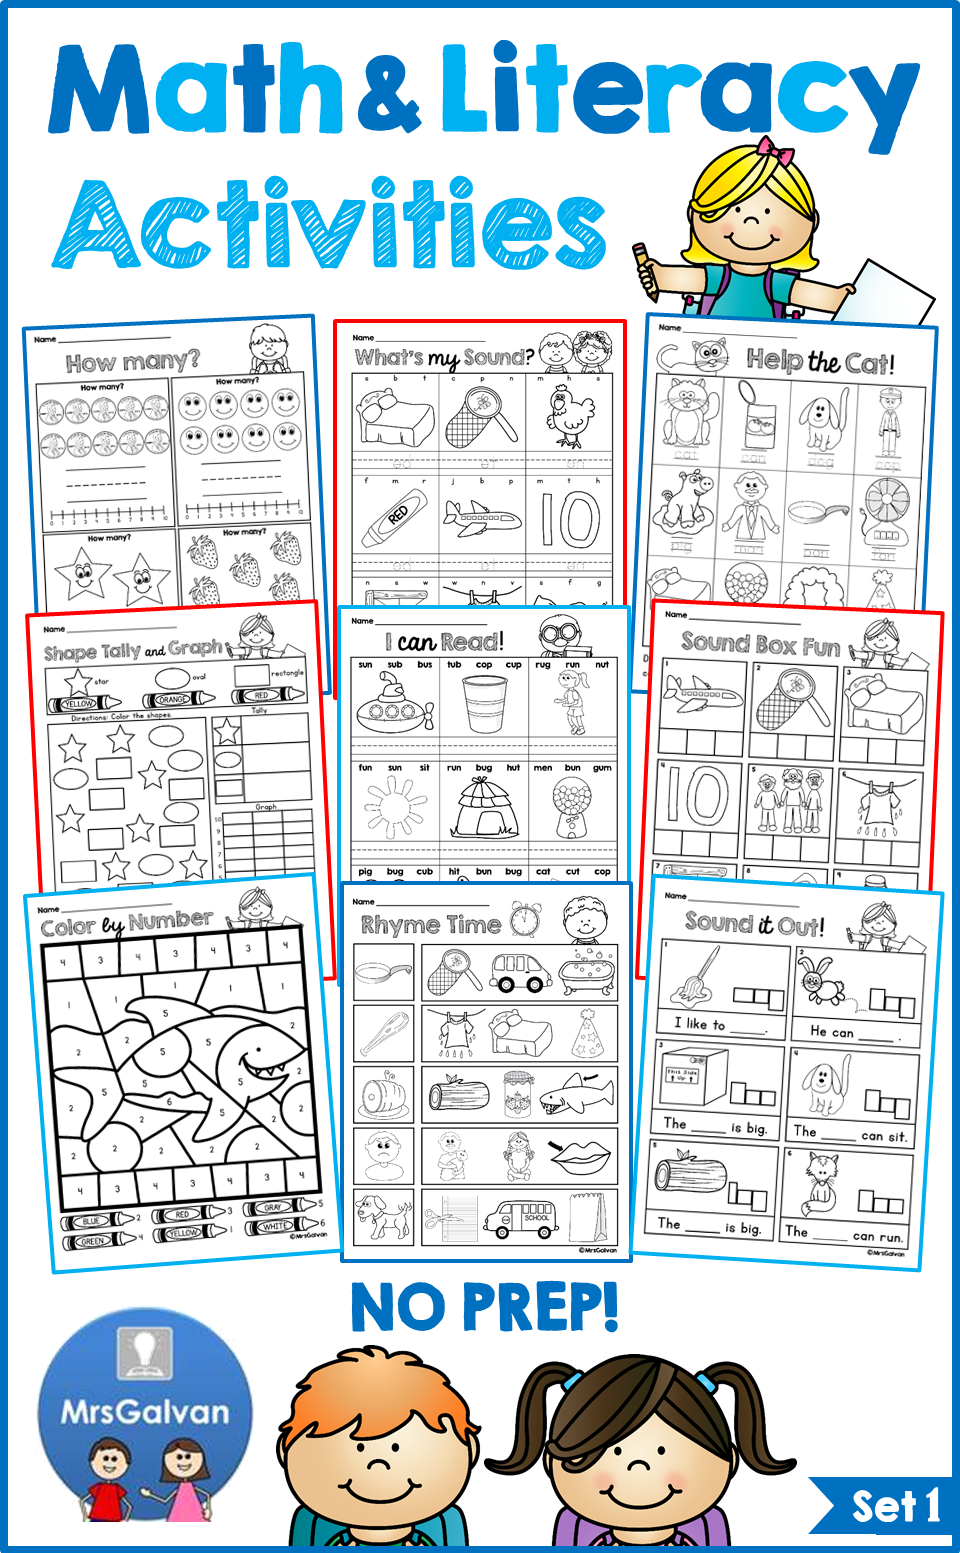 NO PREP Math and Literacy Activities Packet Set 1 Reading Math ...